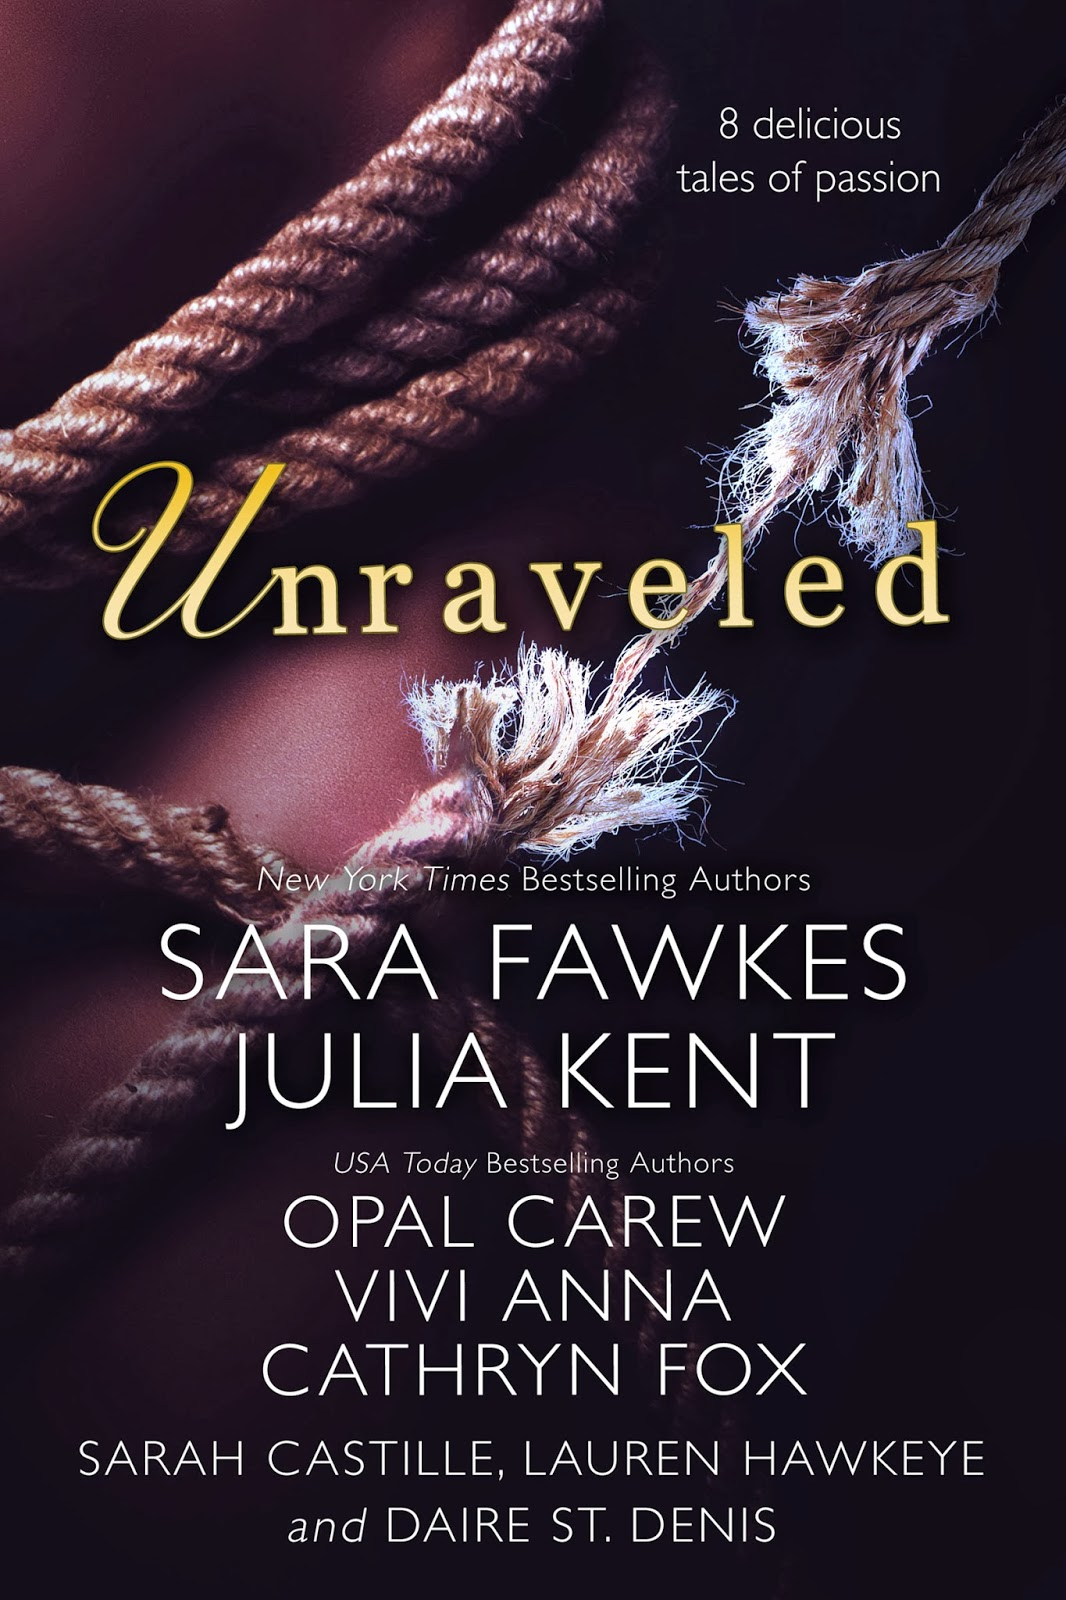 fangtastic books  unraveled   8 delicious tales of passion